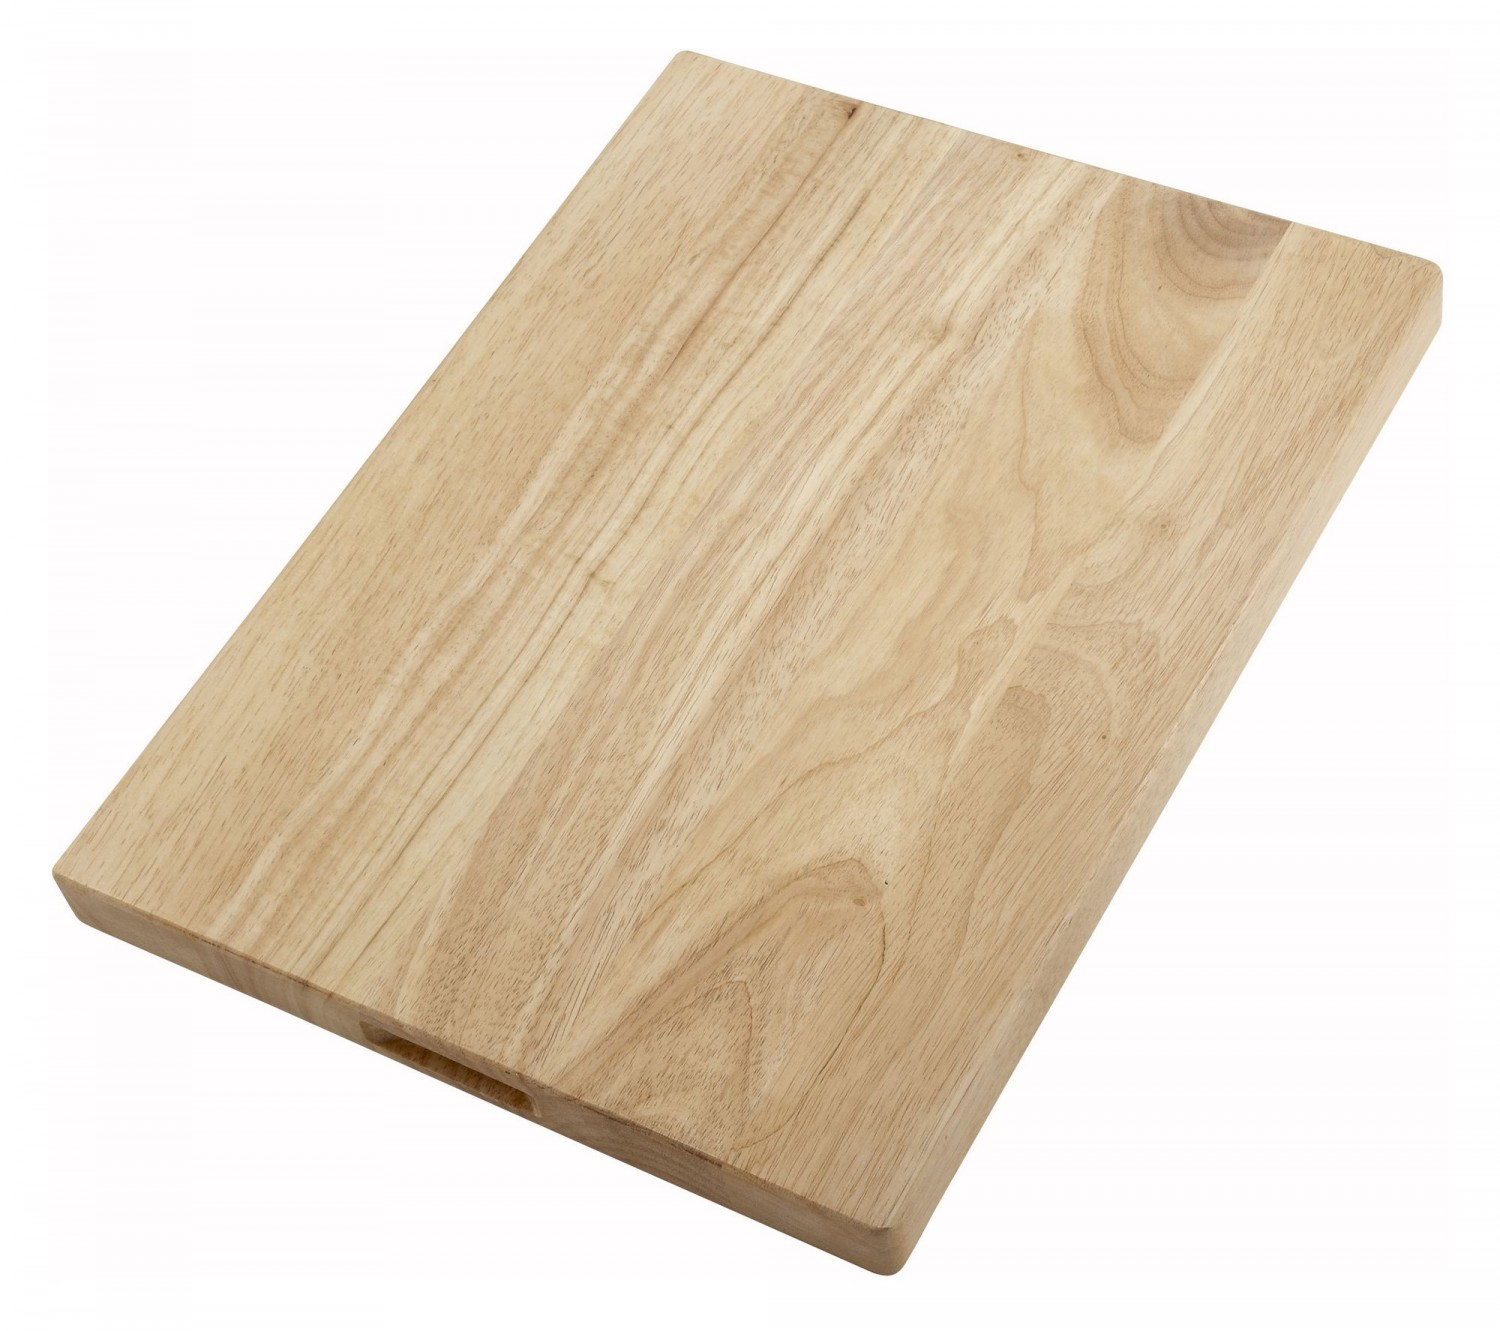 Winco Wcb 1824 Wooden Cutting Board 18 X 24 1 3 4